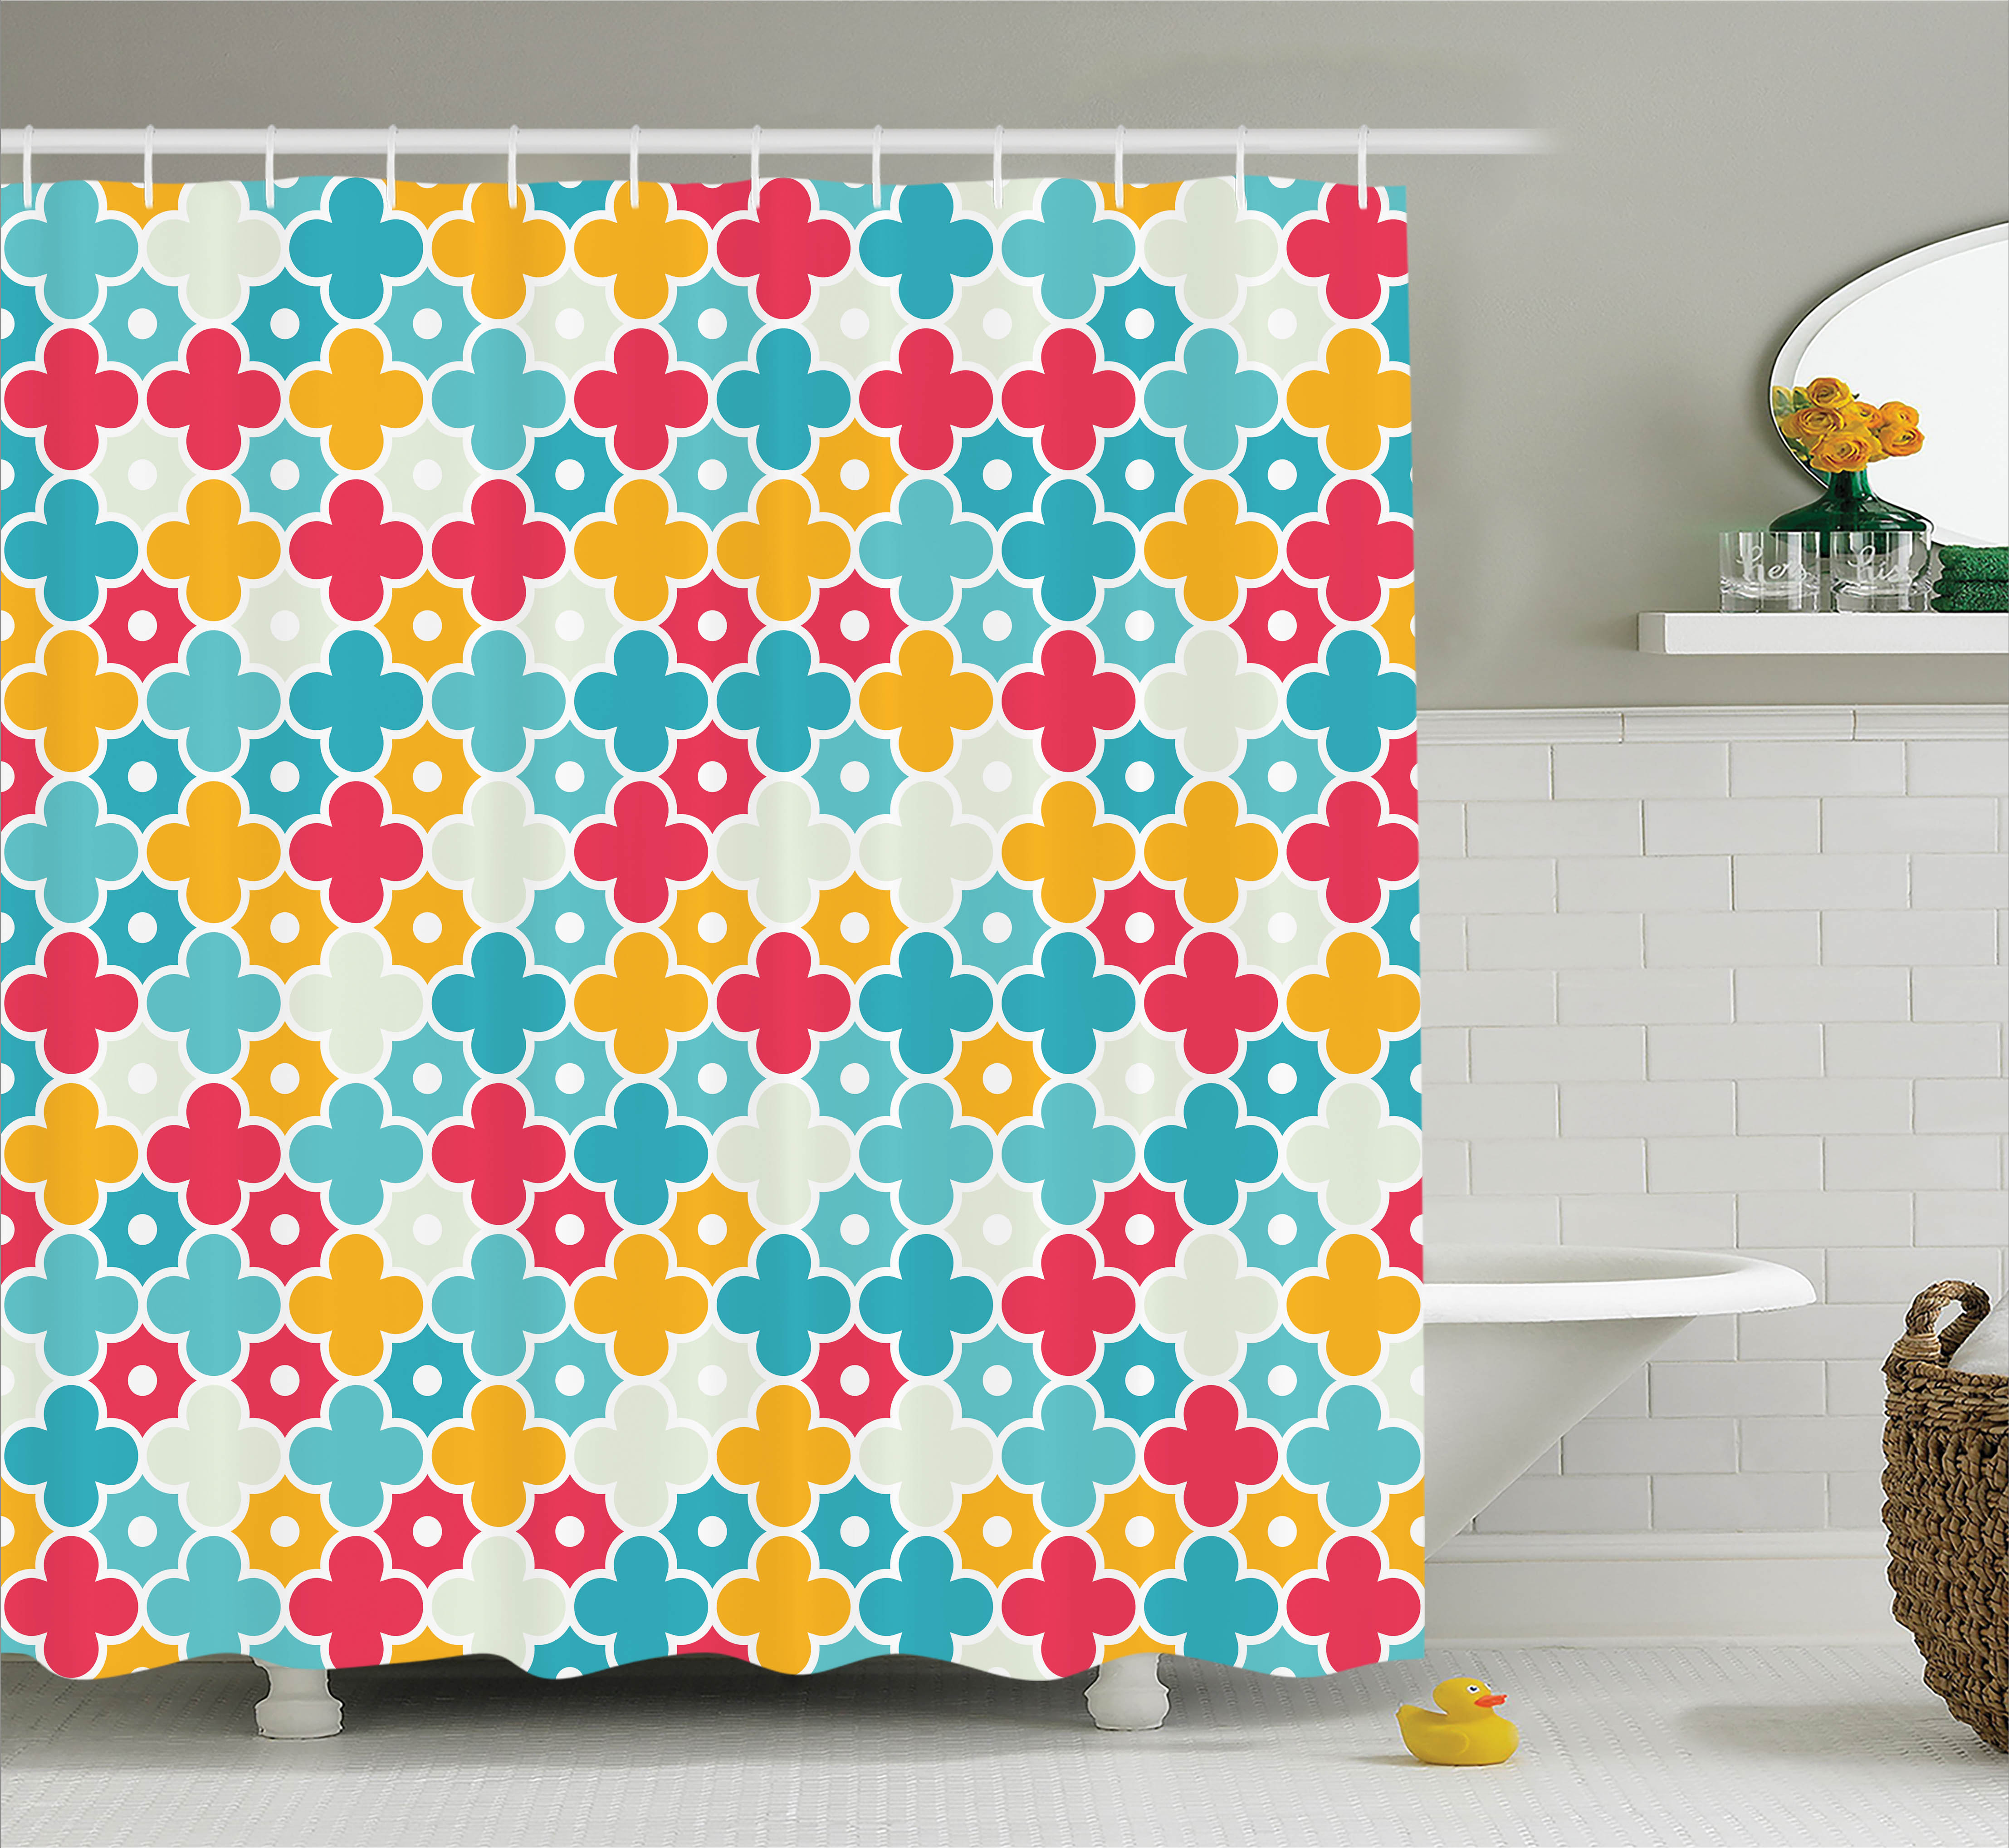 Quatrefoil Decor Shower Curtain, Kids Colorful Petal Clover Leaf Pattern Bohem Casual Kids Decor, Fabric Bathroom Set with Hooks, 69W X 75L Inches Long, Red Turquoise Yellow, by Ambesonne